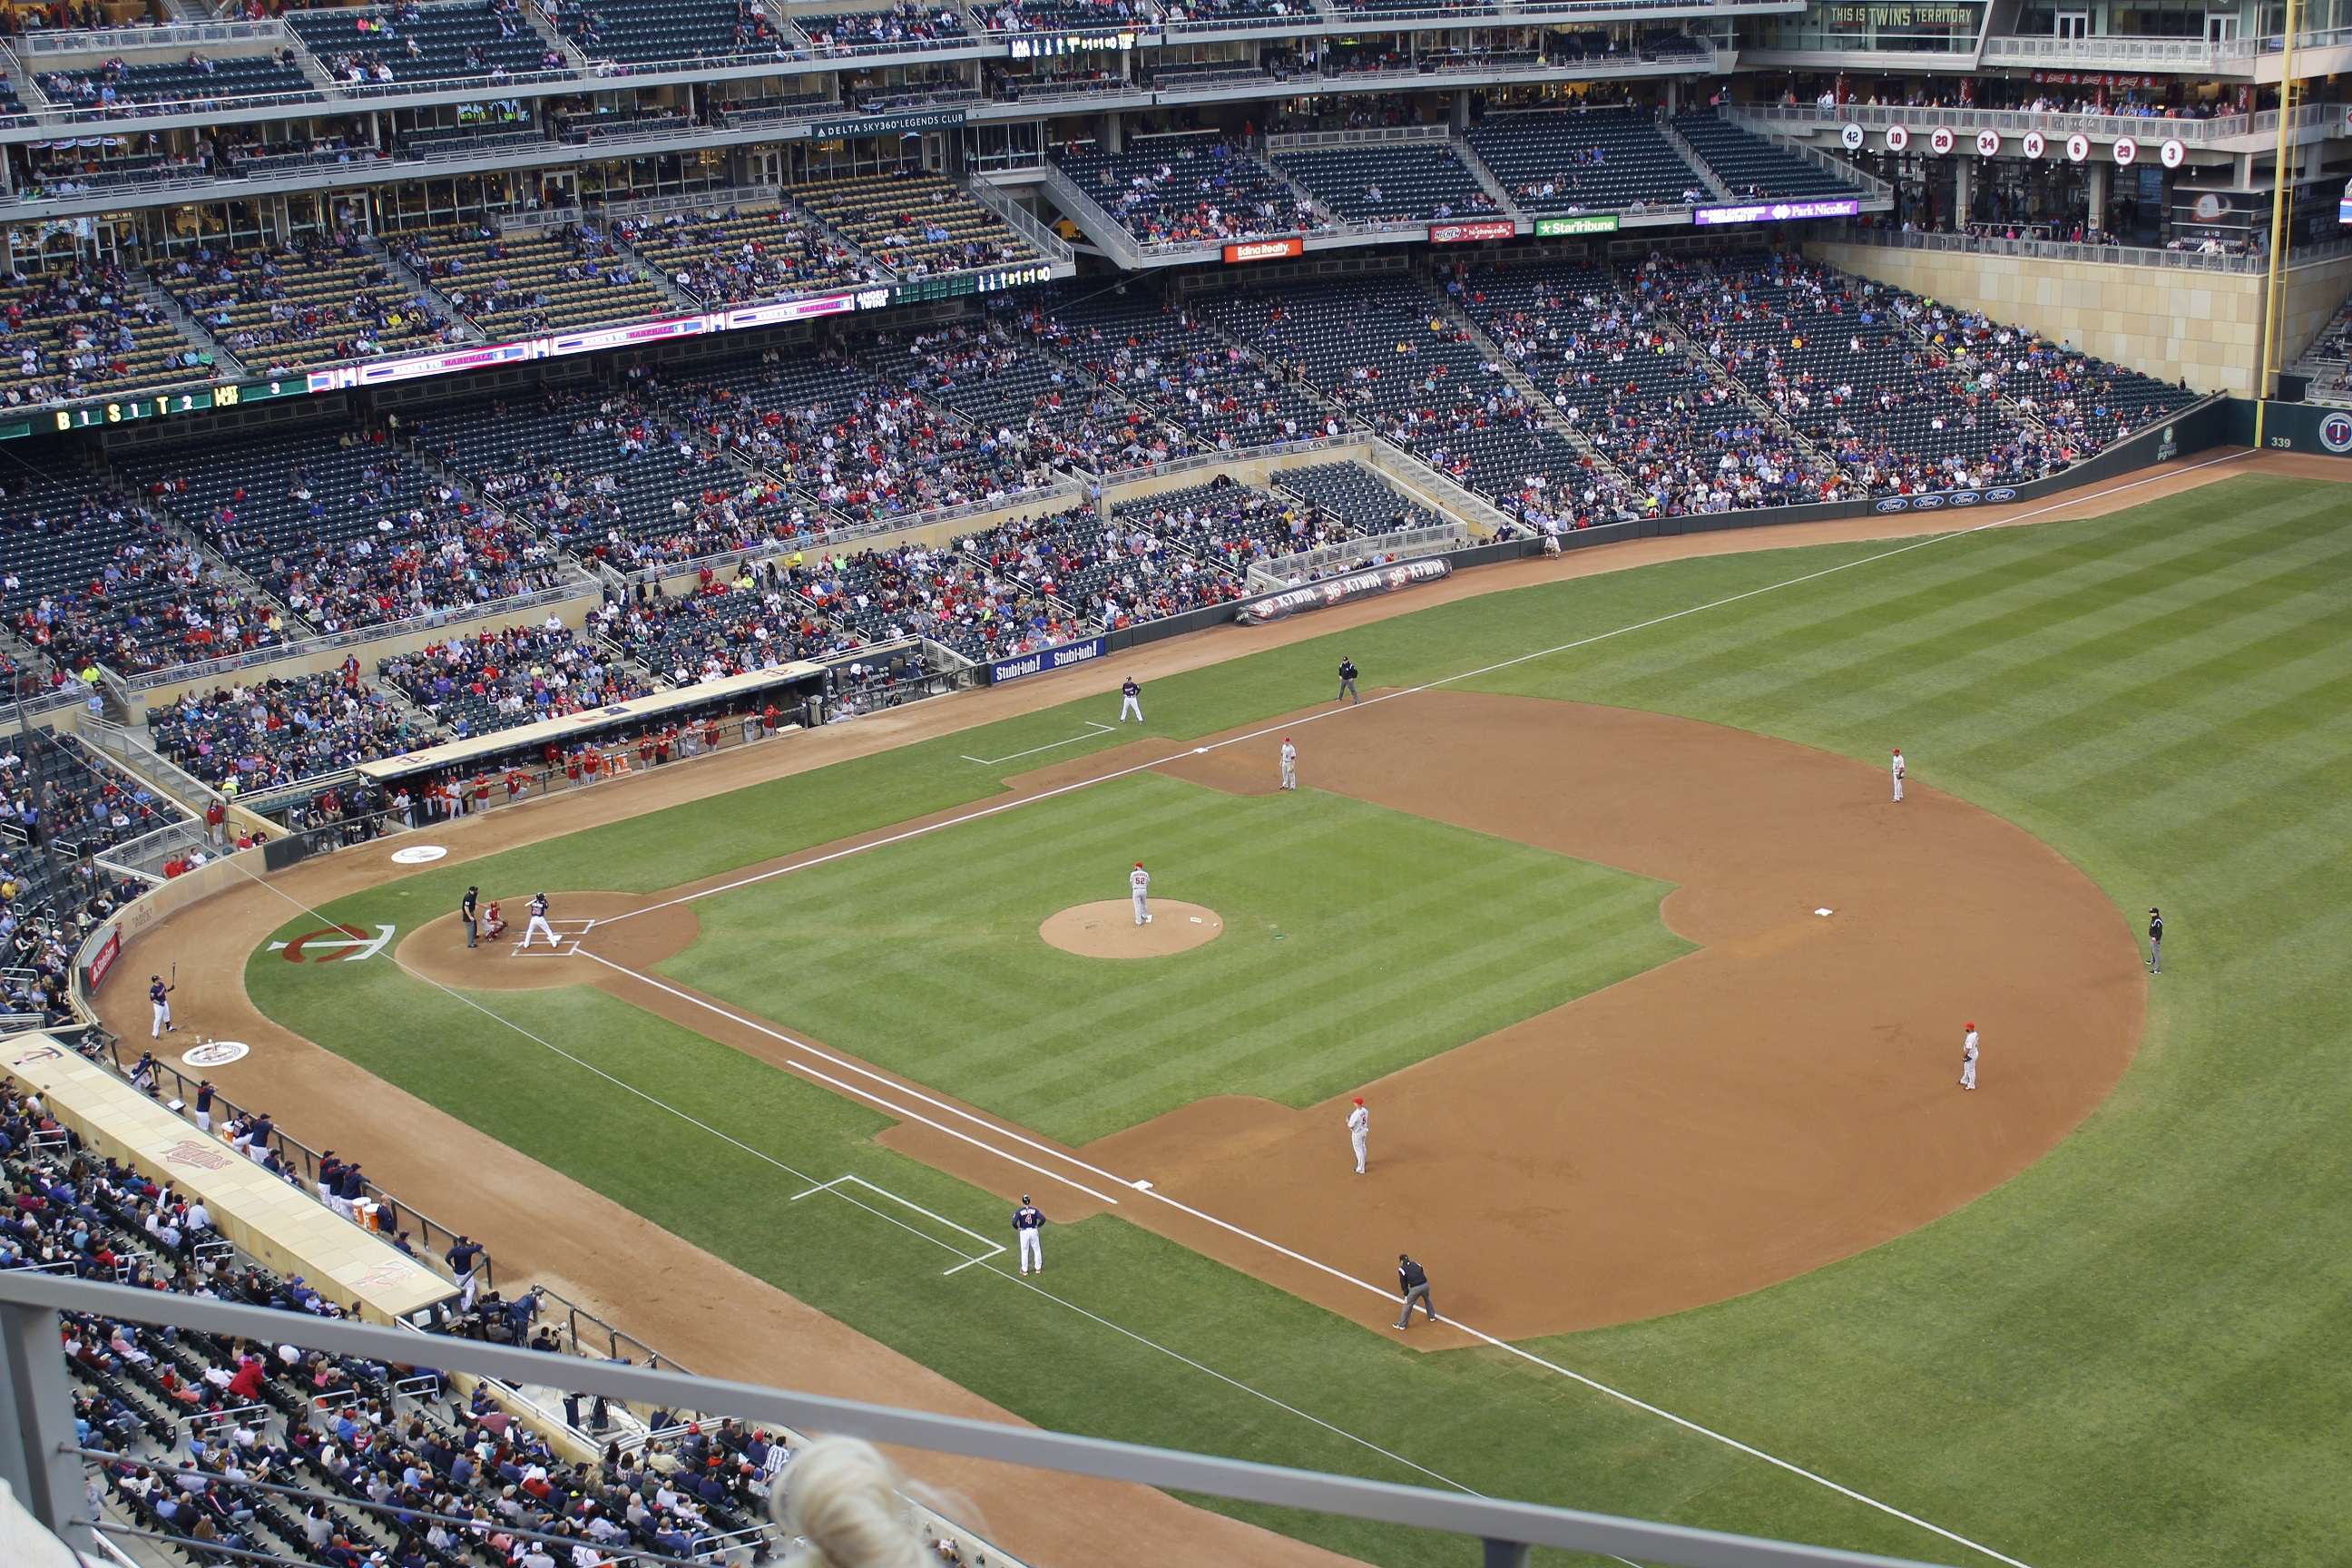 21st stop target field september 5th 2014 montreal on the road